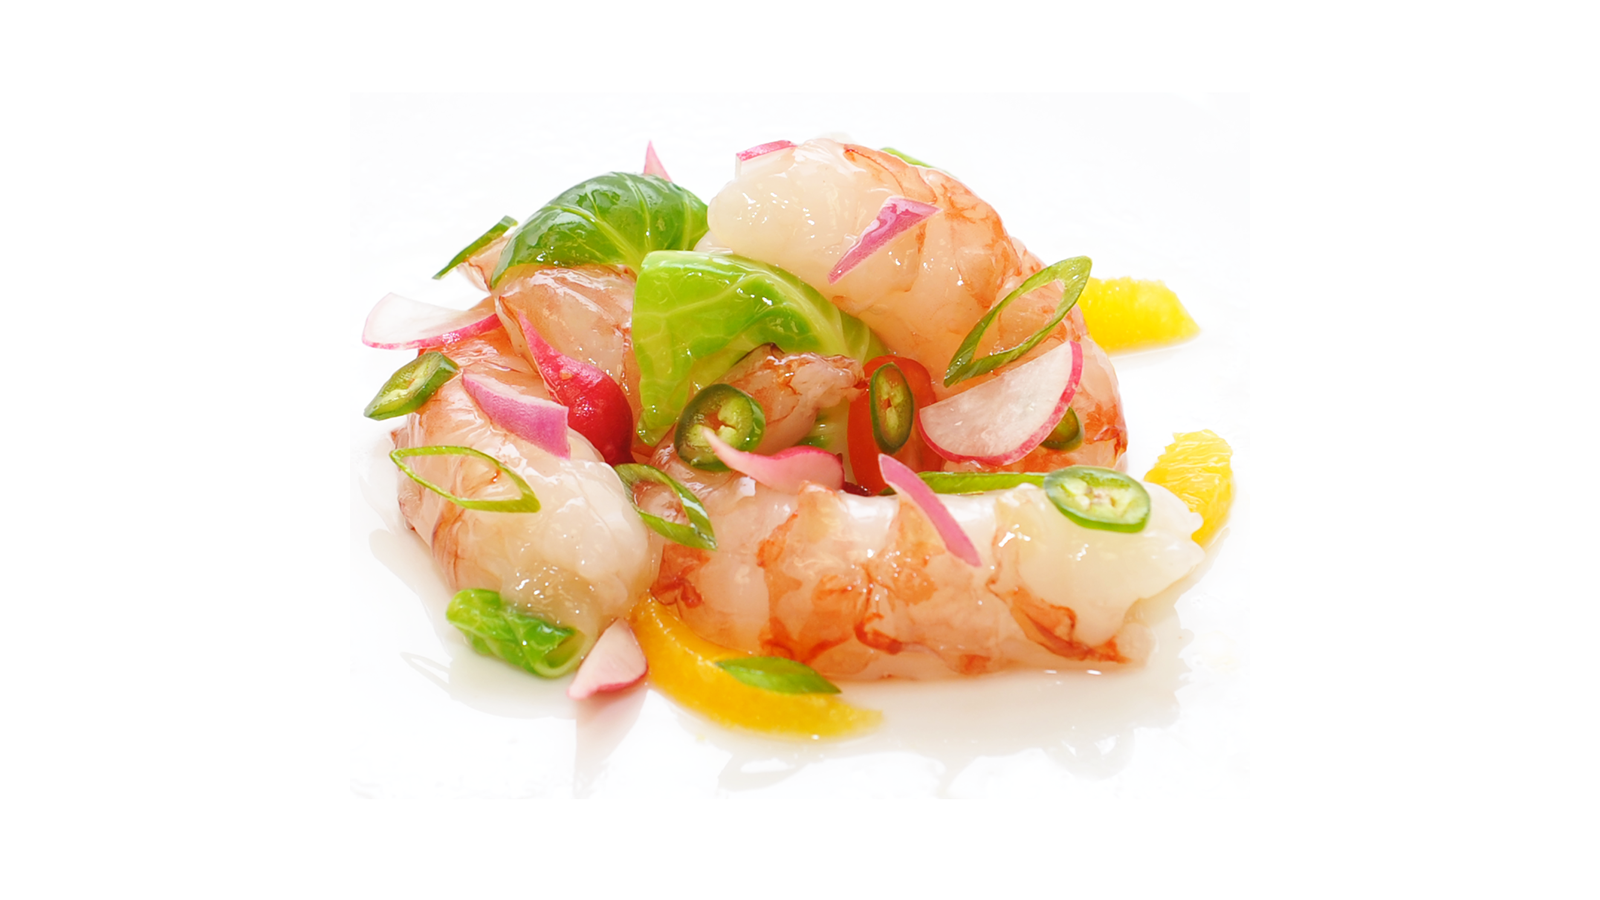 Argentine Shrimp Cevice - Pickled Vegetable Salad